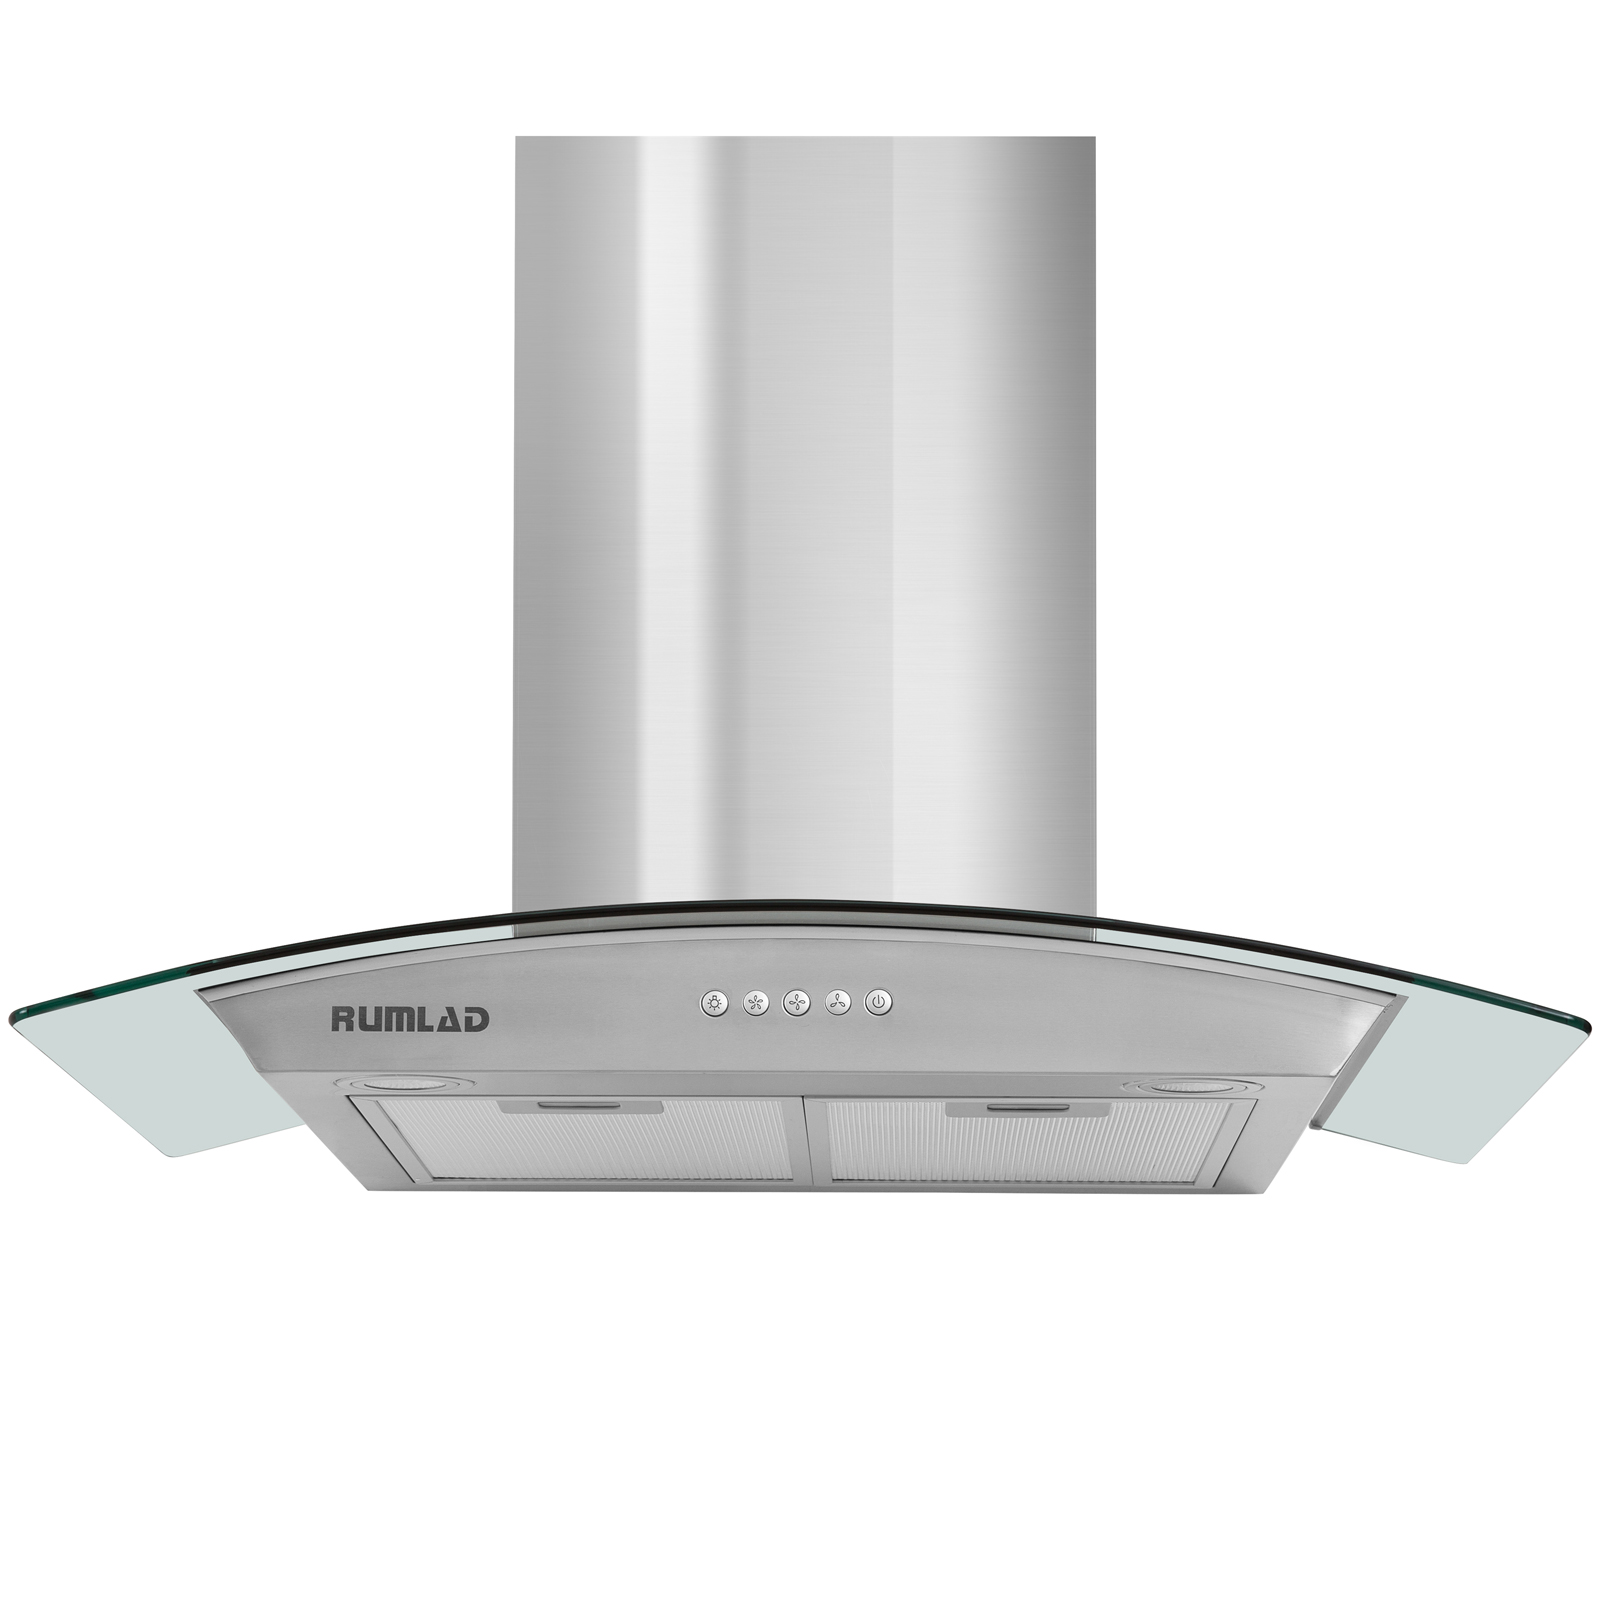 30 stainless steel wall mount range hood stove vent fan w led control kitchen 699944647121 ebay. Black Bedroom Furniture Sets. Home Design Ideas